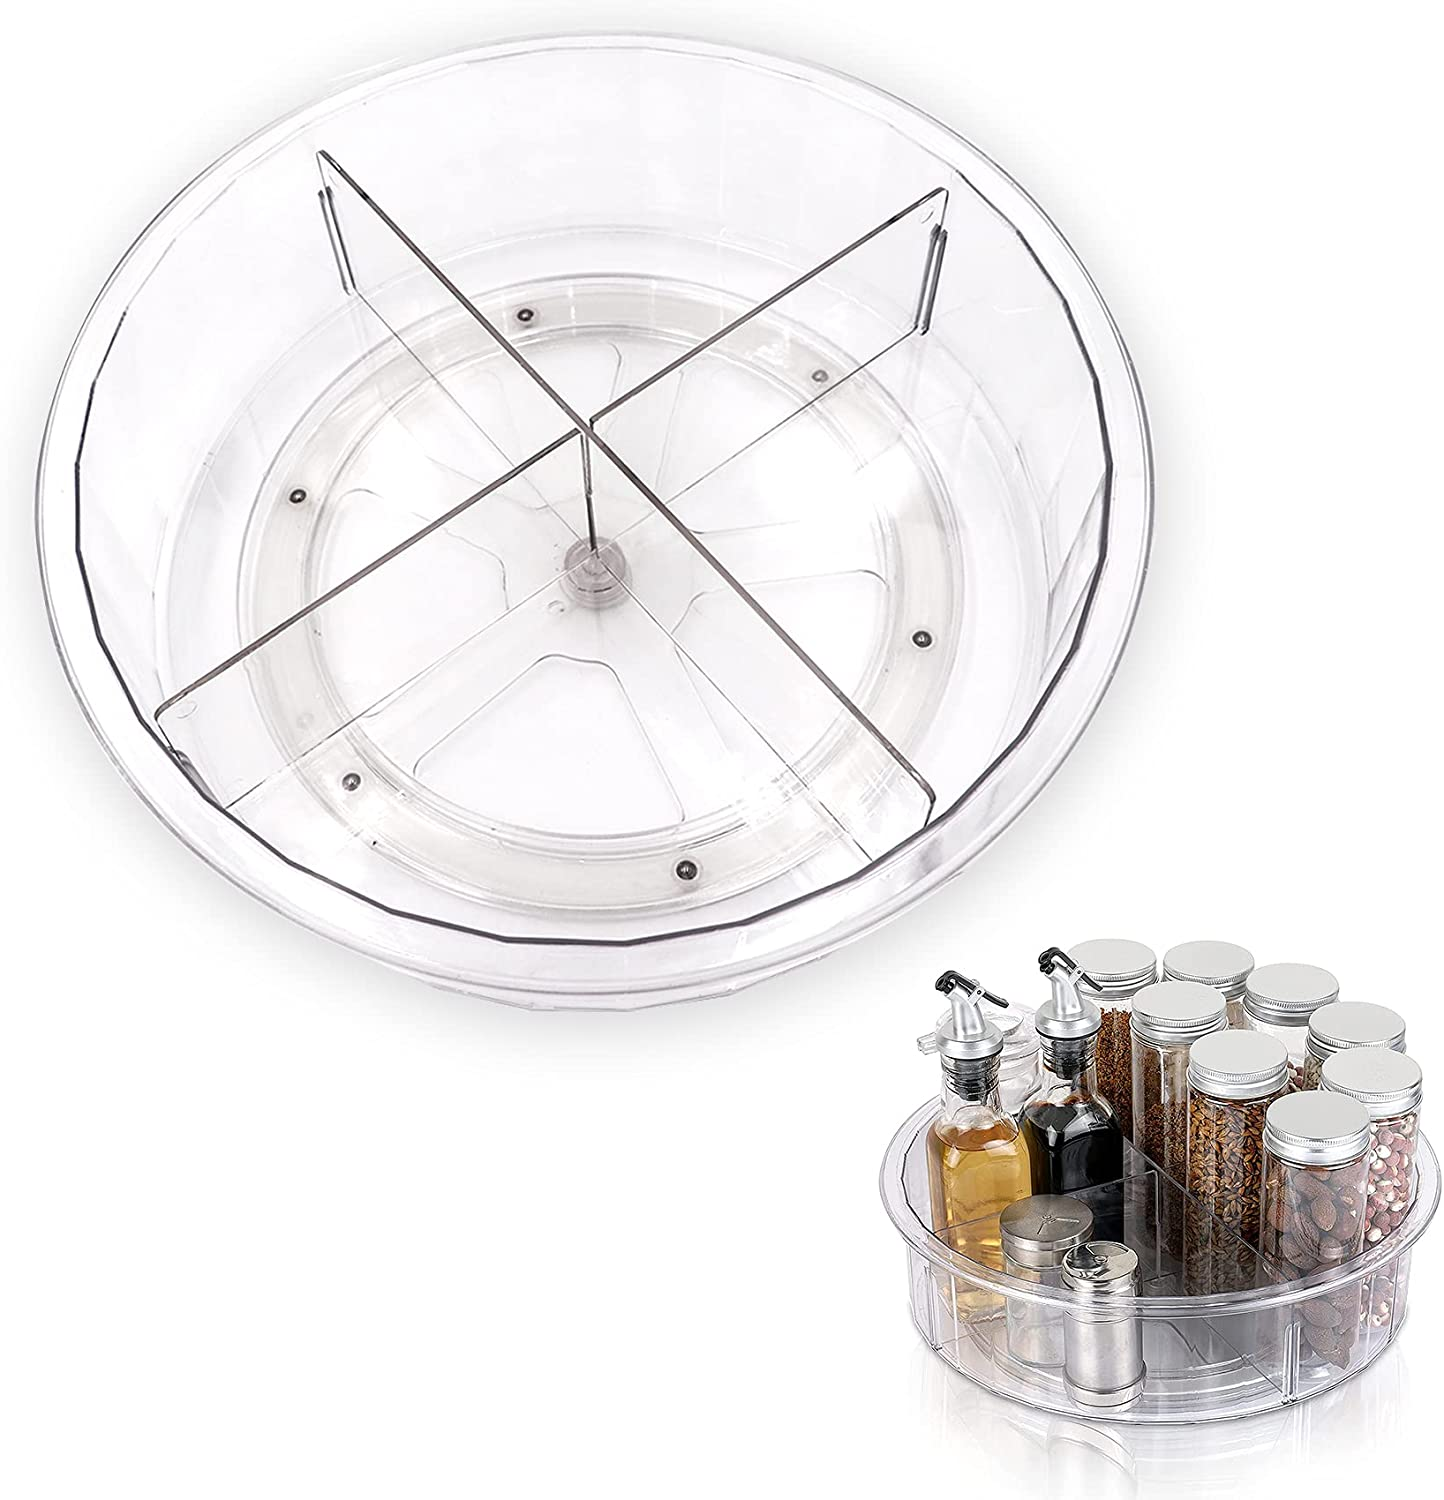 Plastic Round Lazy Susan Rotating Turntable Food Storage Container for Cabinet,Pantry,Refrigerator,Countertop,Spinning Organizer for Spices,Condiments,Baking Supplies